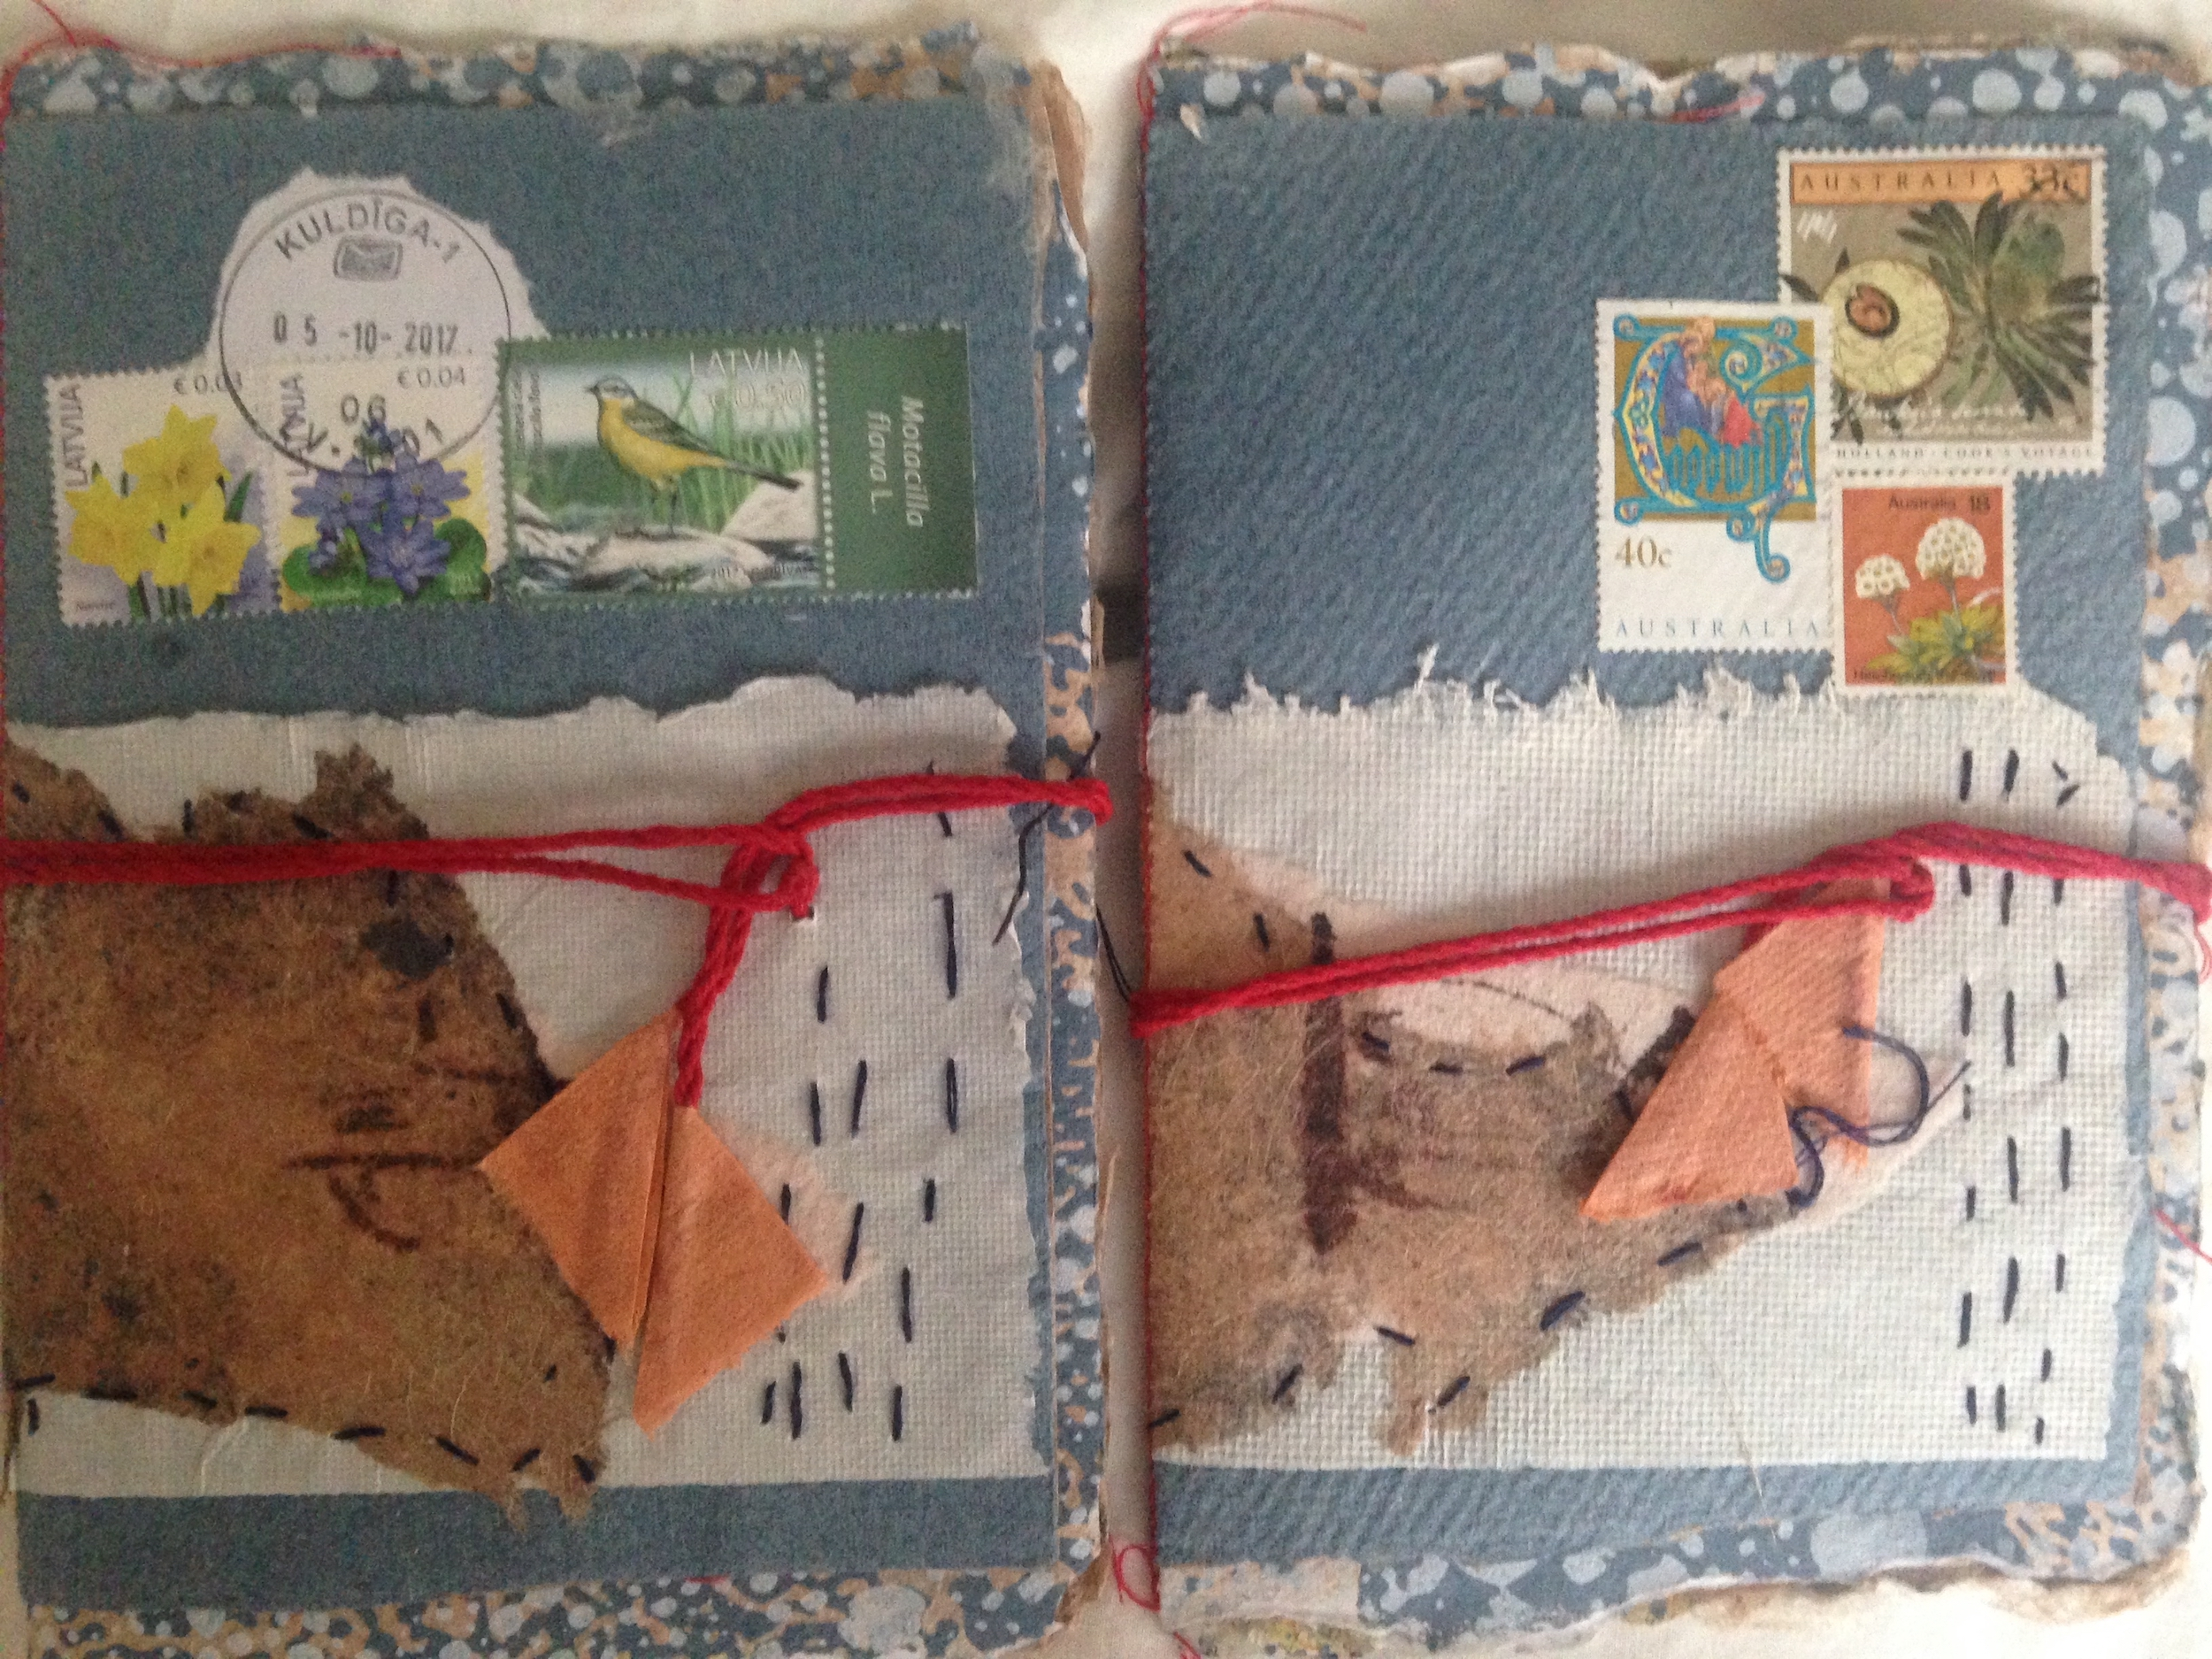 Between Two Continents  - artist books with Latvian and Australian stamps by Ilze Dilane and Heather Matthew 2018.